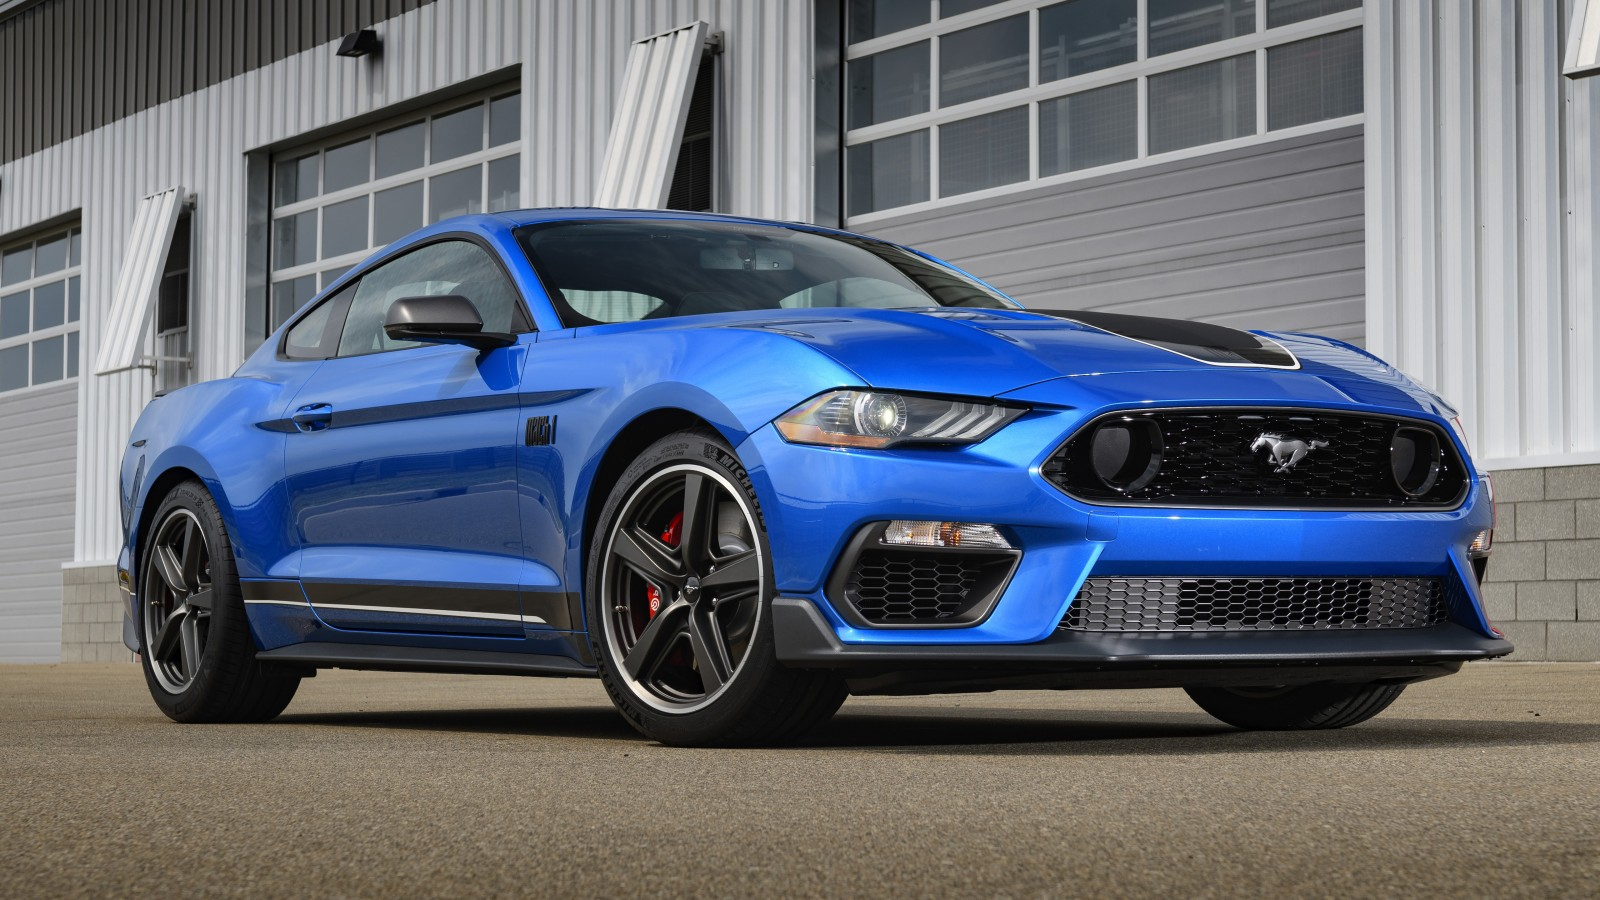 2021 Ford Mustang Mach 1 Images